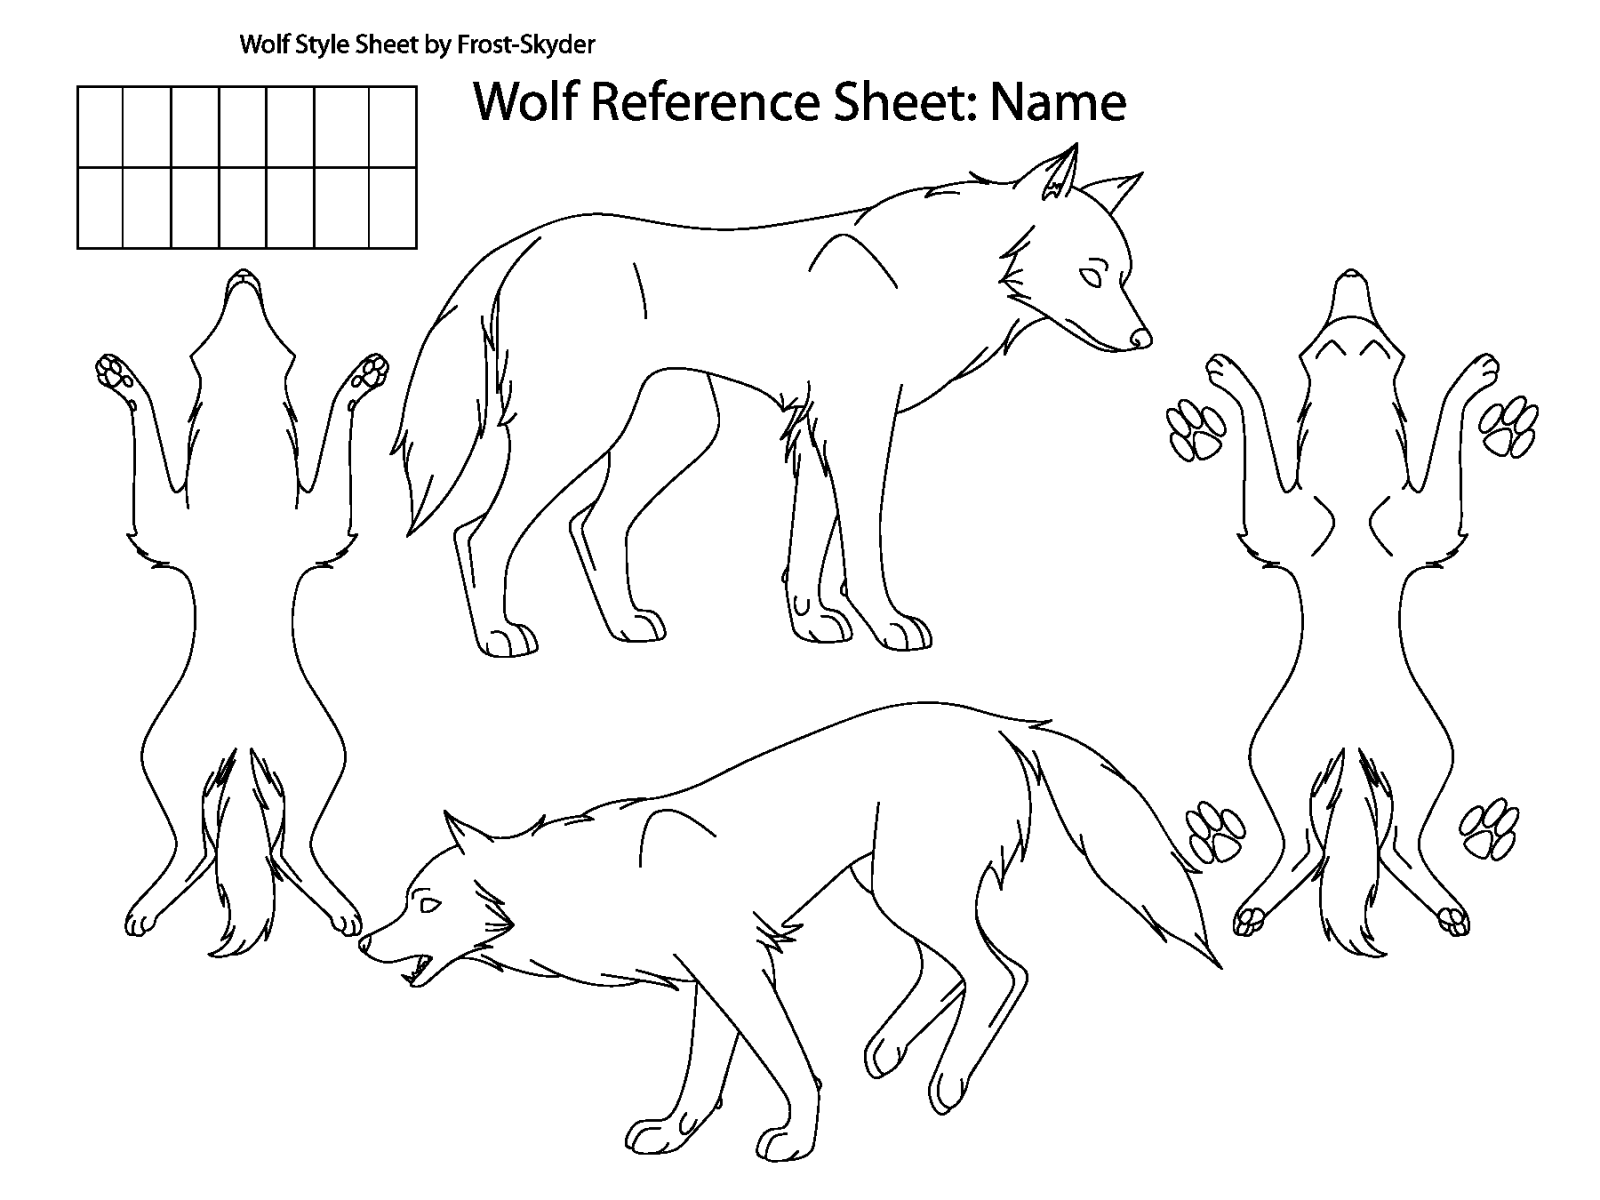 wolf_reference_sheet_by_frost_skyder-d2yrd5s.png